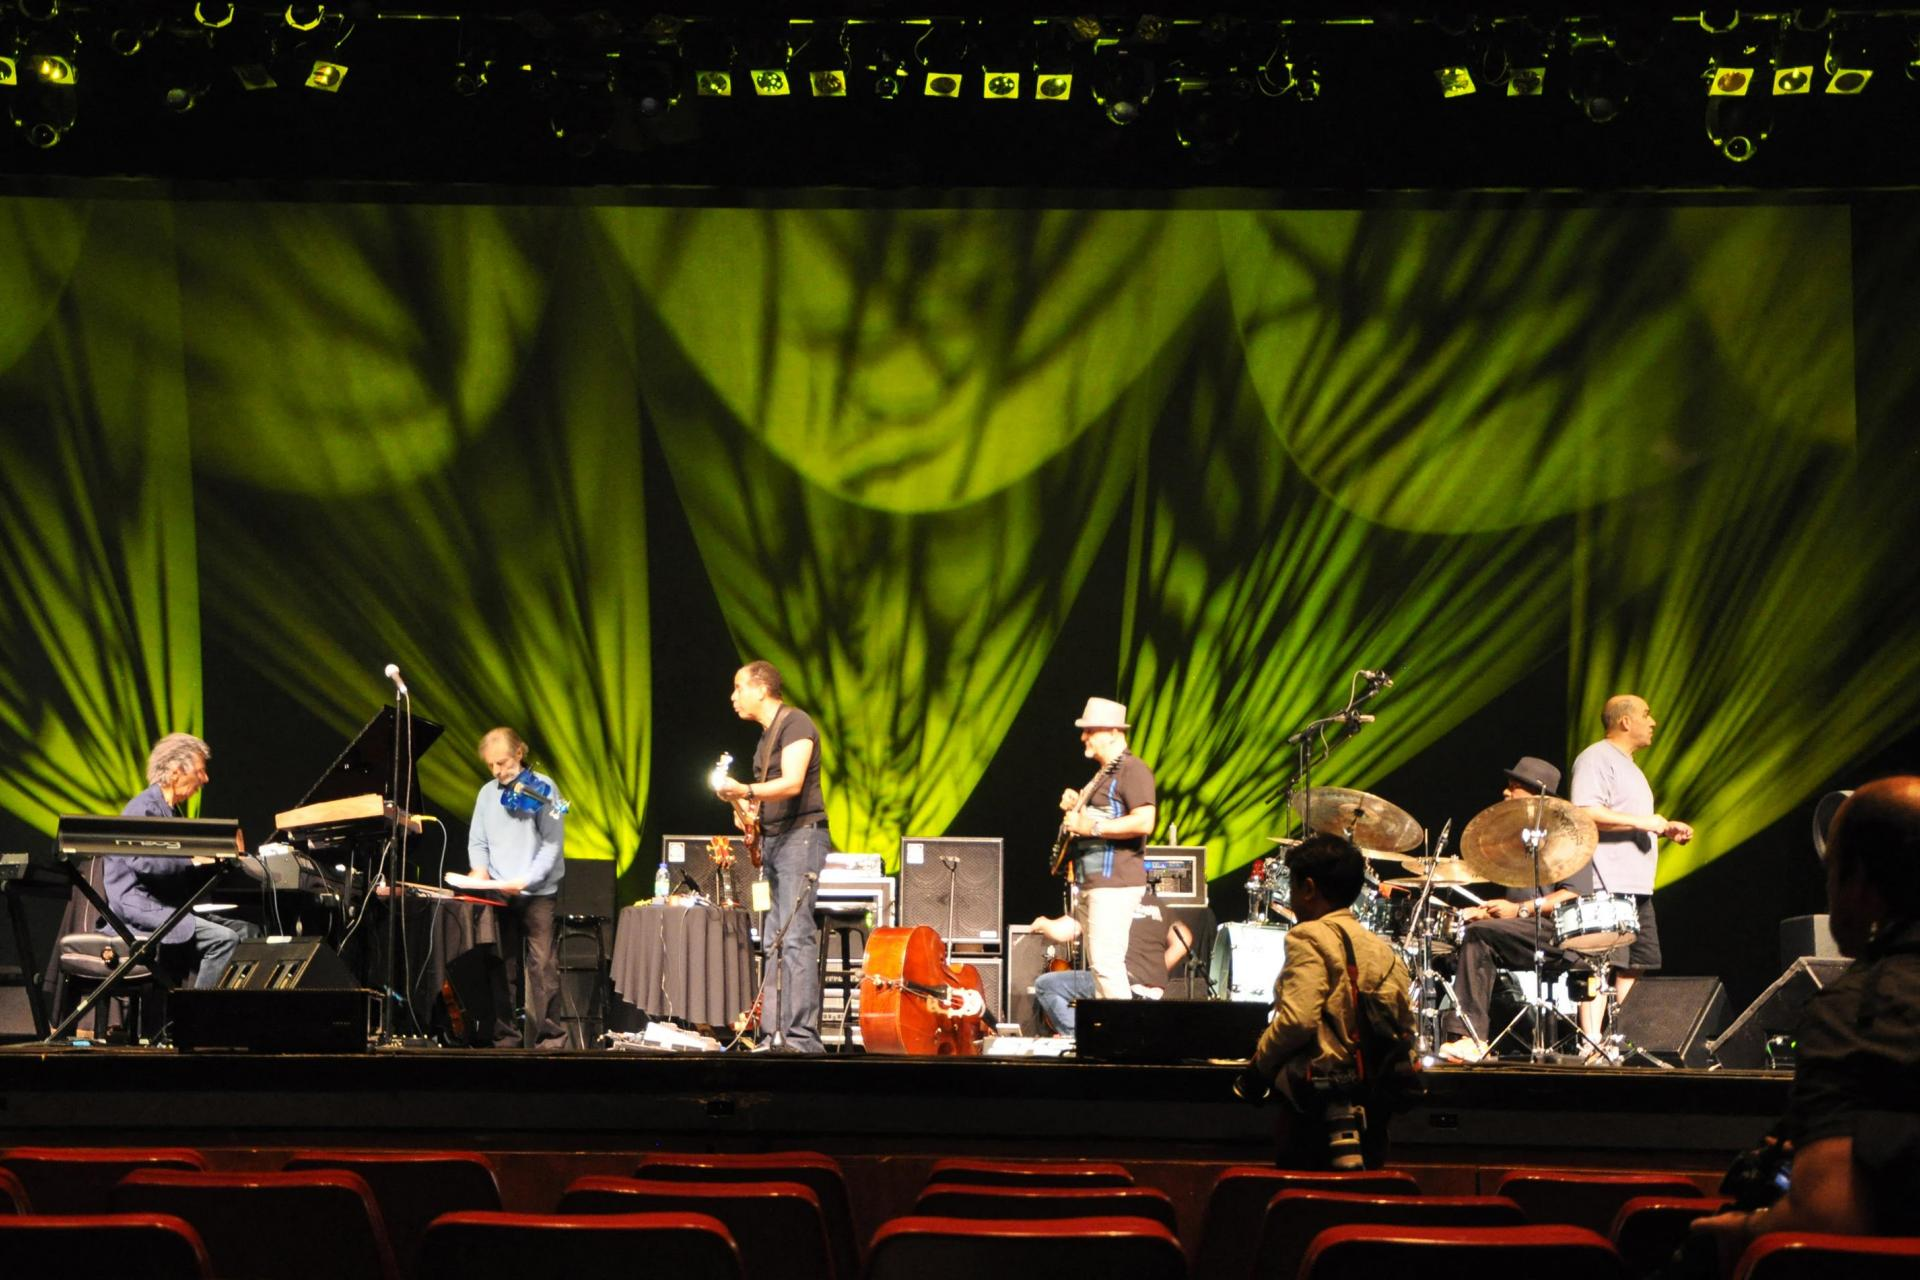 The group Return To Forever with (left to right) Chick Corea on piano and keyboards, Jean-Luc Ponty on violin, Stanley Clarke on bass, Frank Gambale on guitar and Lenny White on drums in a soundcheck before a concert in Montreal. QuebecPhoto: Eva Hambach/AFP